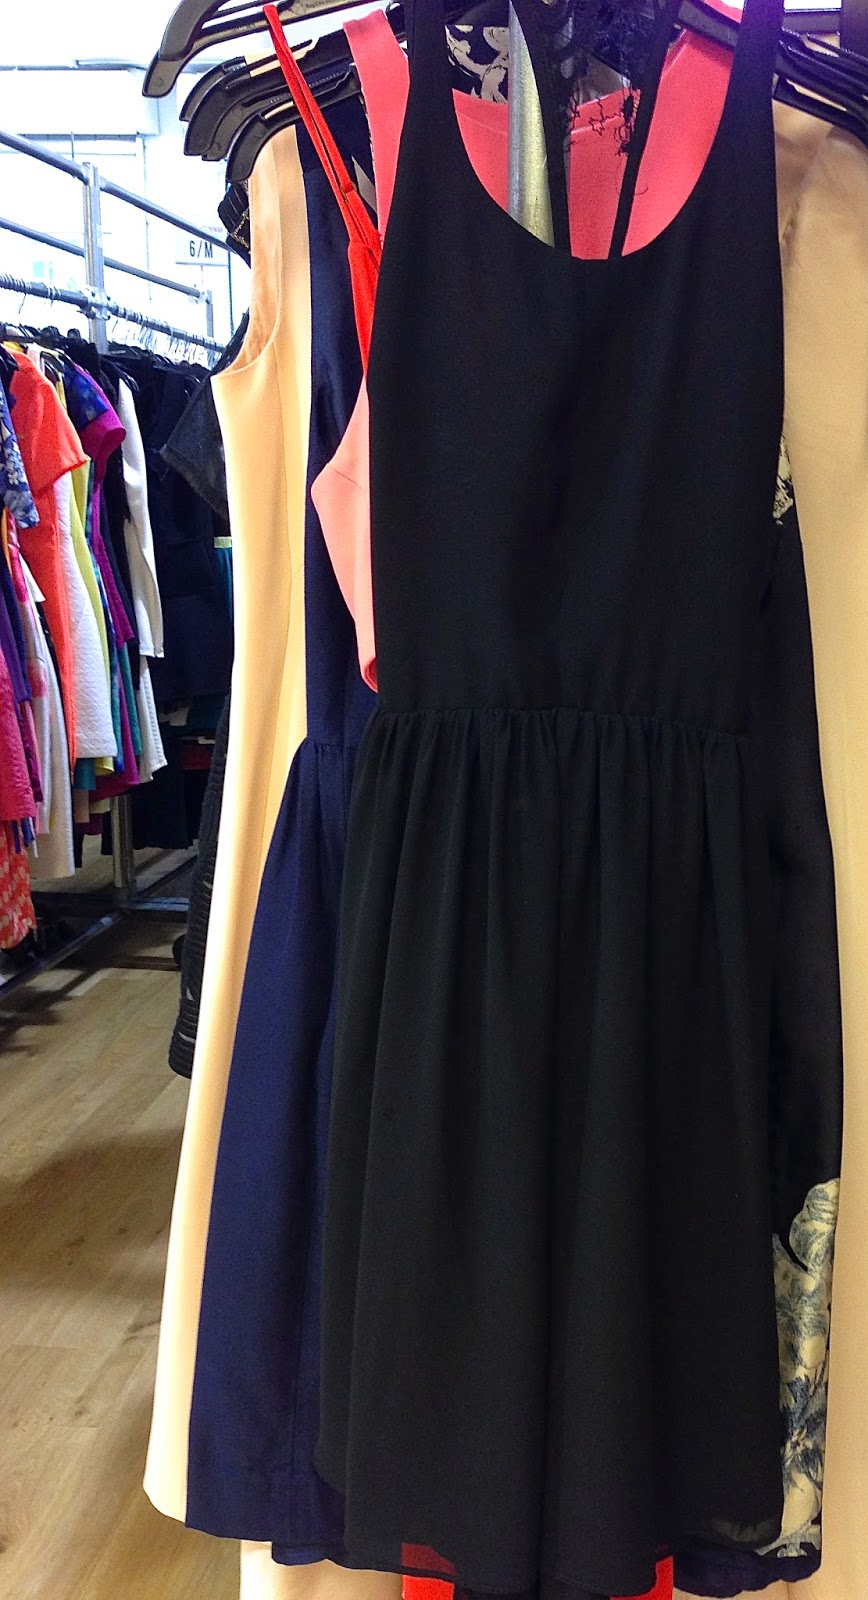 fashionably petite: Rent the Runway Sample Sale